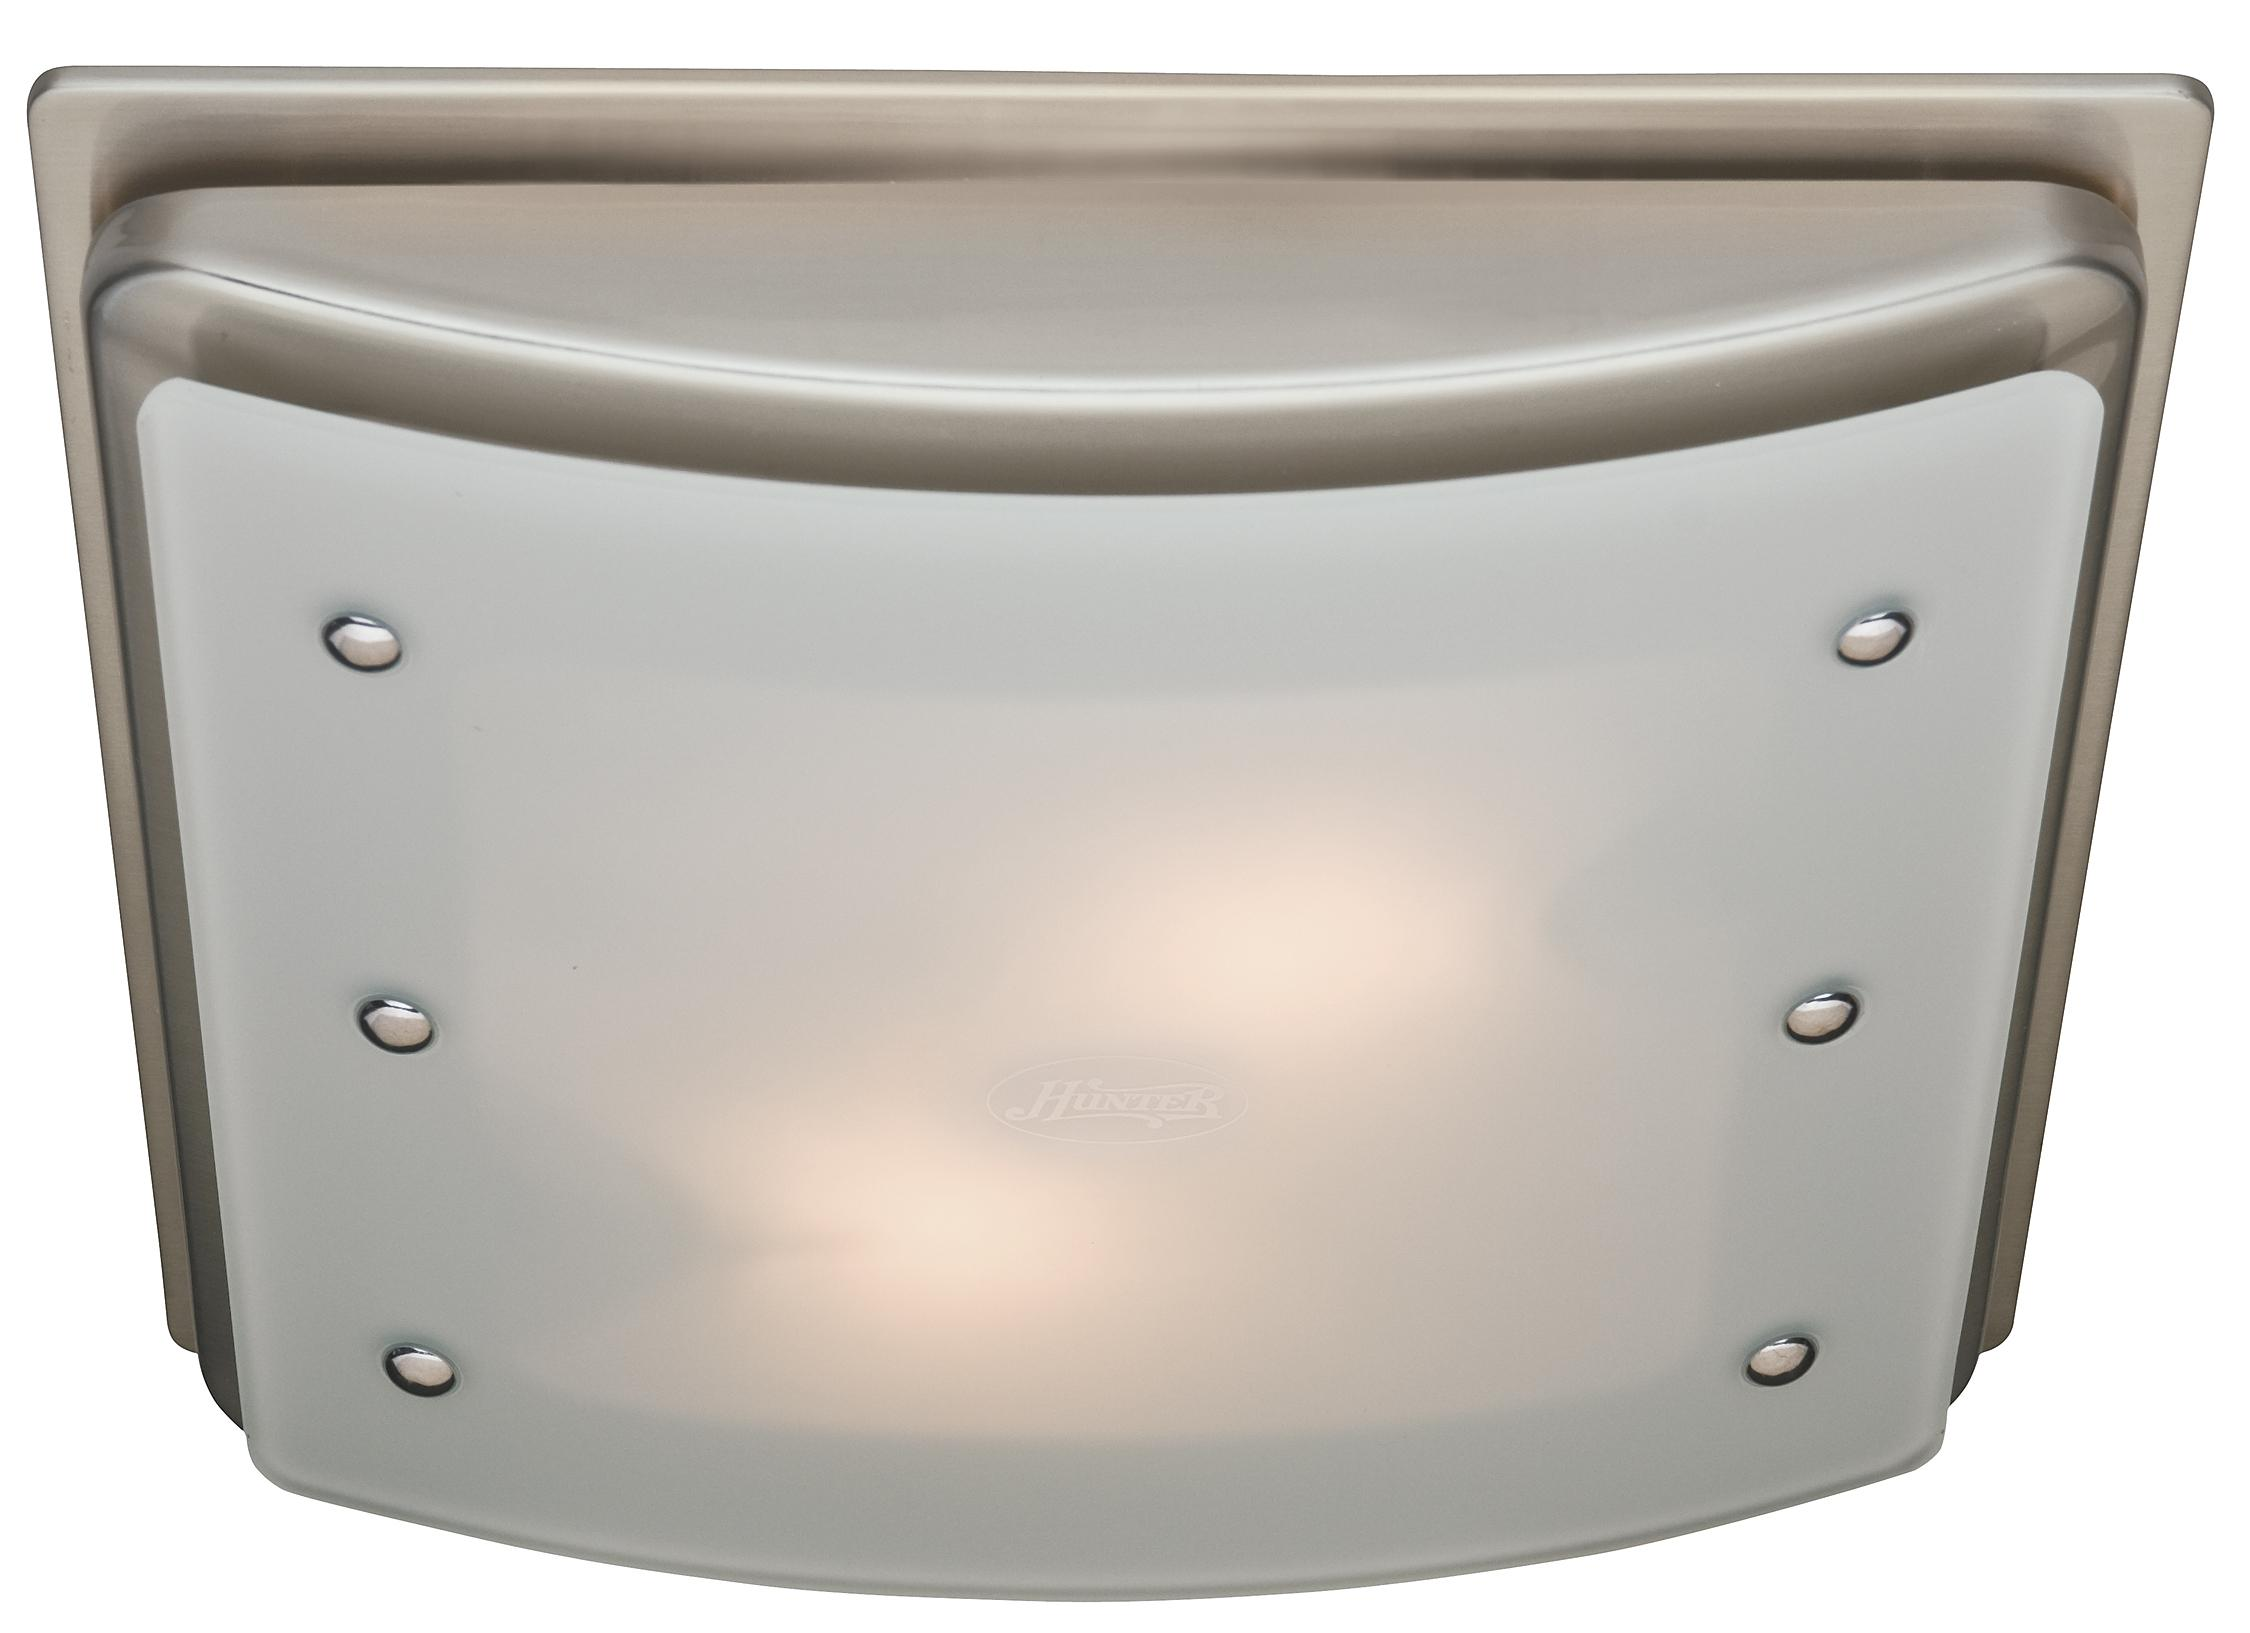 Wonderful Spa Inspired Small Bathrooms Tall Light Blue Bathroom Sinks Clean Bathroom Tempered Glass Vessel Sink Vanity Faucet Bathroom Water Closet Design Youthful Wash Basin Designs For Small Bathrooms In India YellowVinegar Bath For Yeast Infection In Dogs Amazon.com: Hunter 90064 Ellipse Bathroom Ventilation Exhaust Fan ..